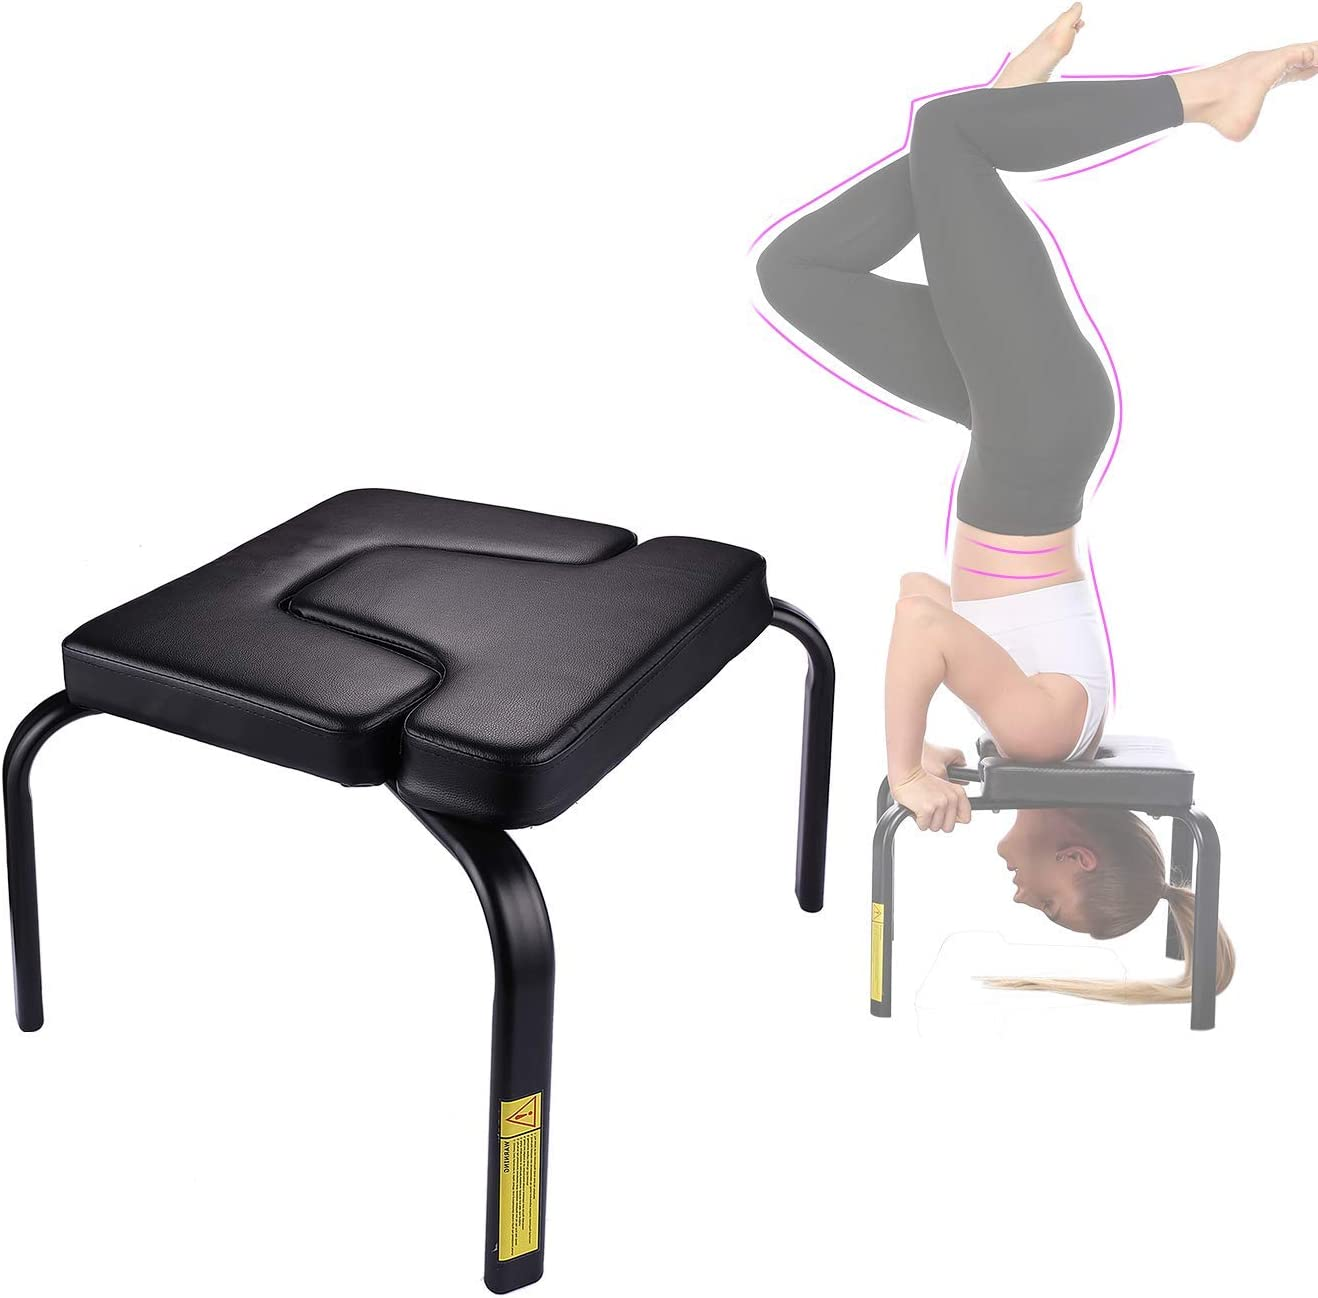 TEXXIS Headstand Bench Stand Yoga Auxiliary Chair Gym for Max 89% OFF Omaha Mall Family